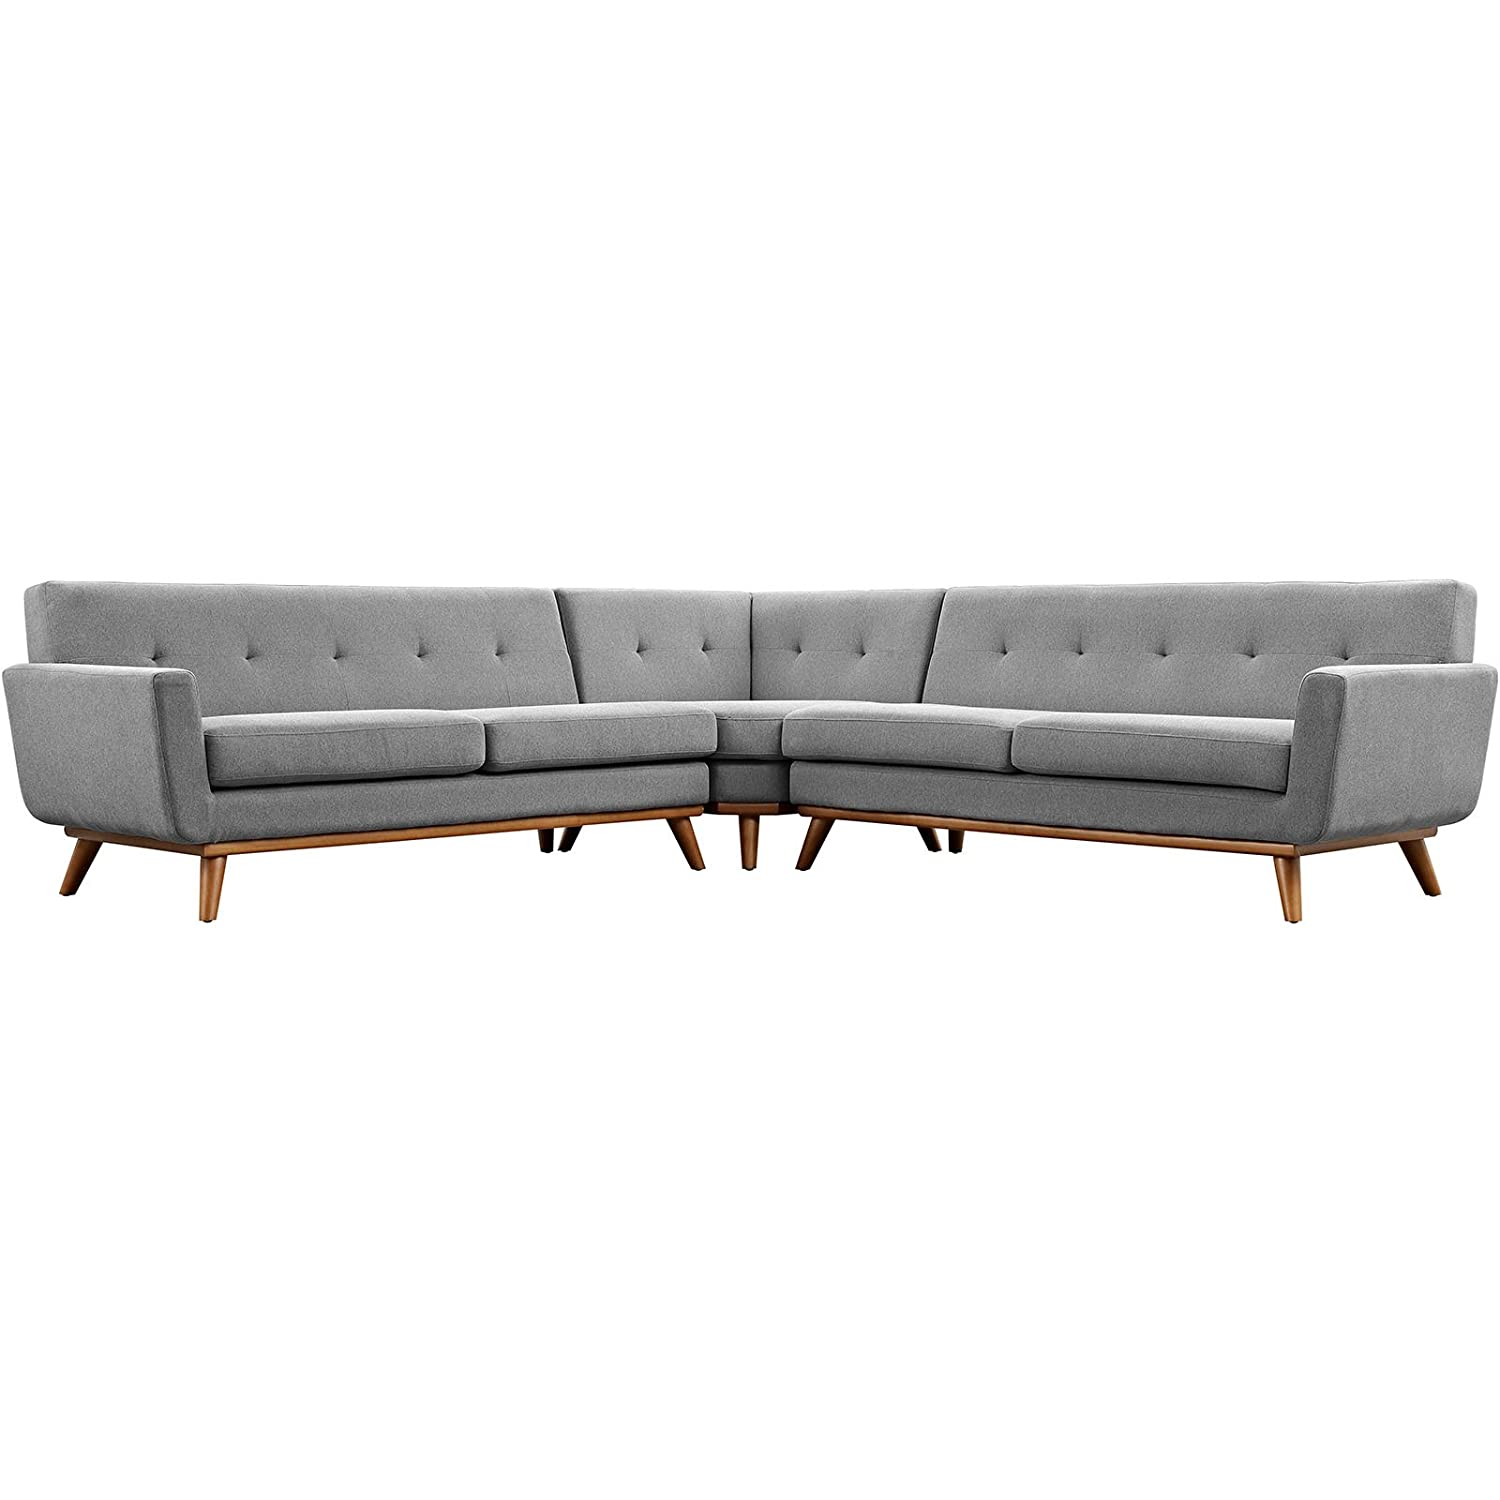 Modern Contemporary L-Shaped Sectional Sofa - Grey - Fabric